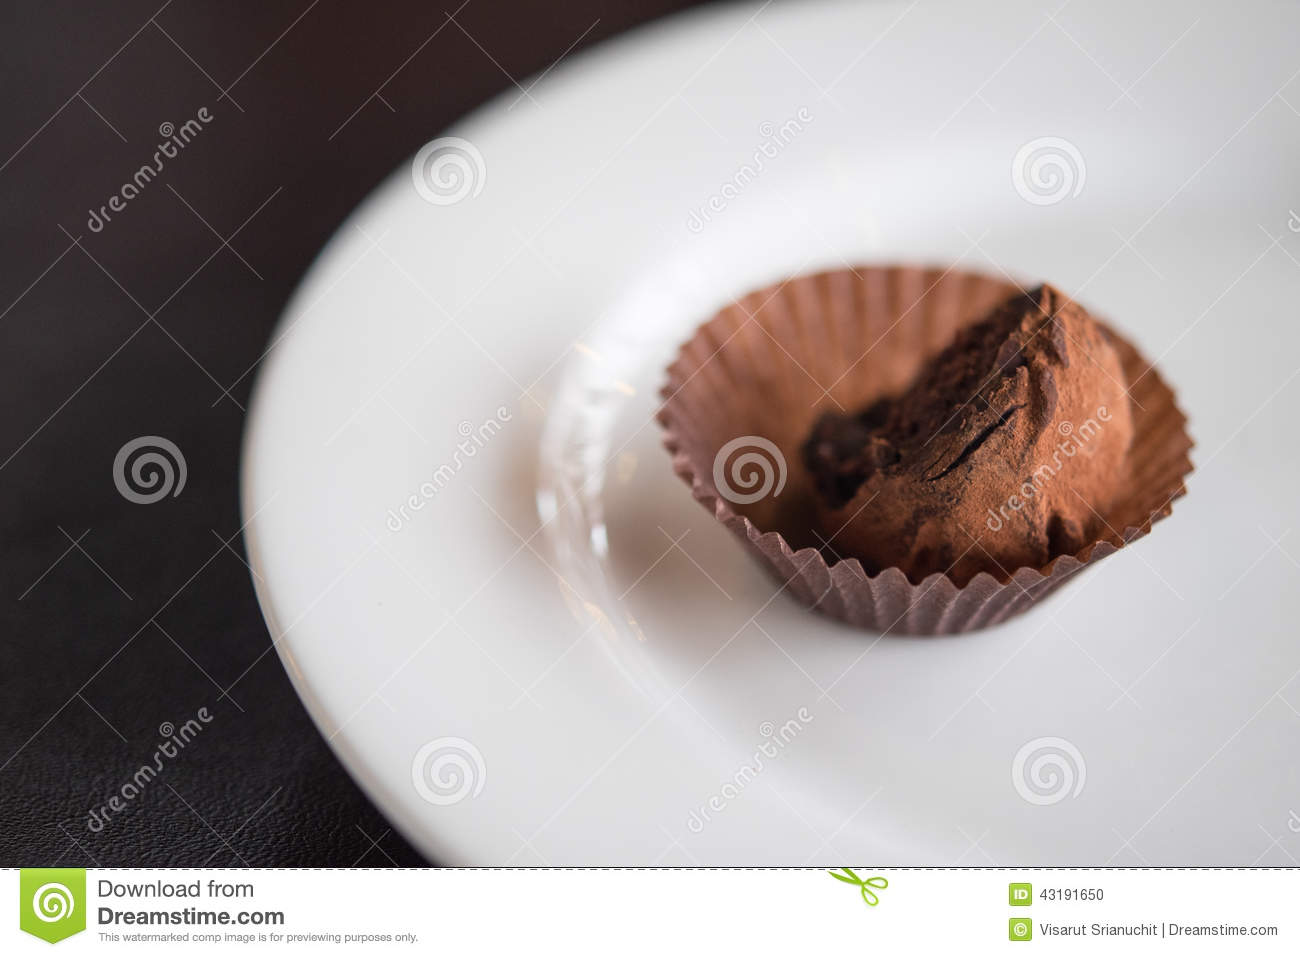 Chocolate ball on white plate